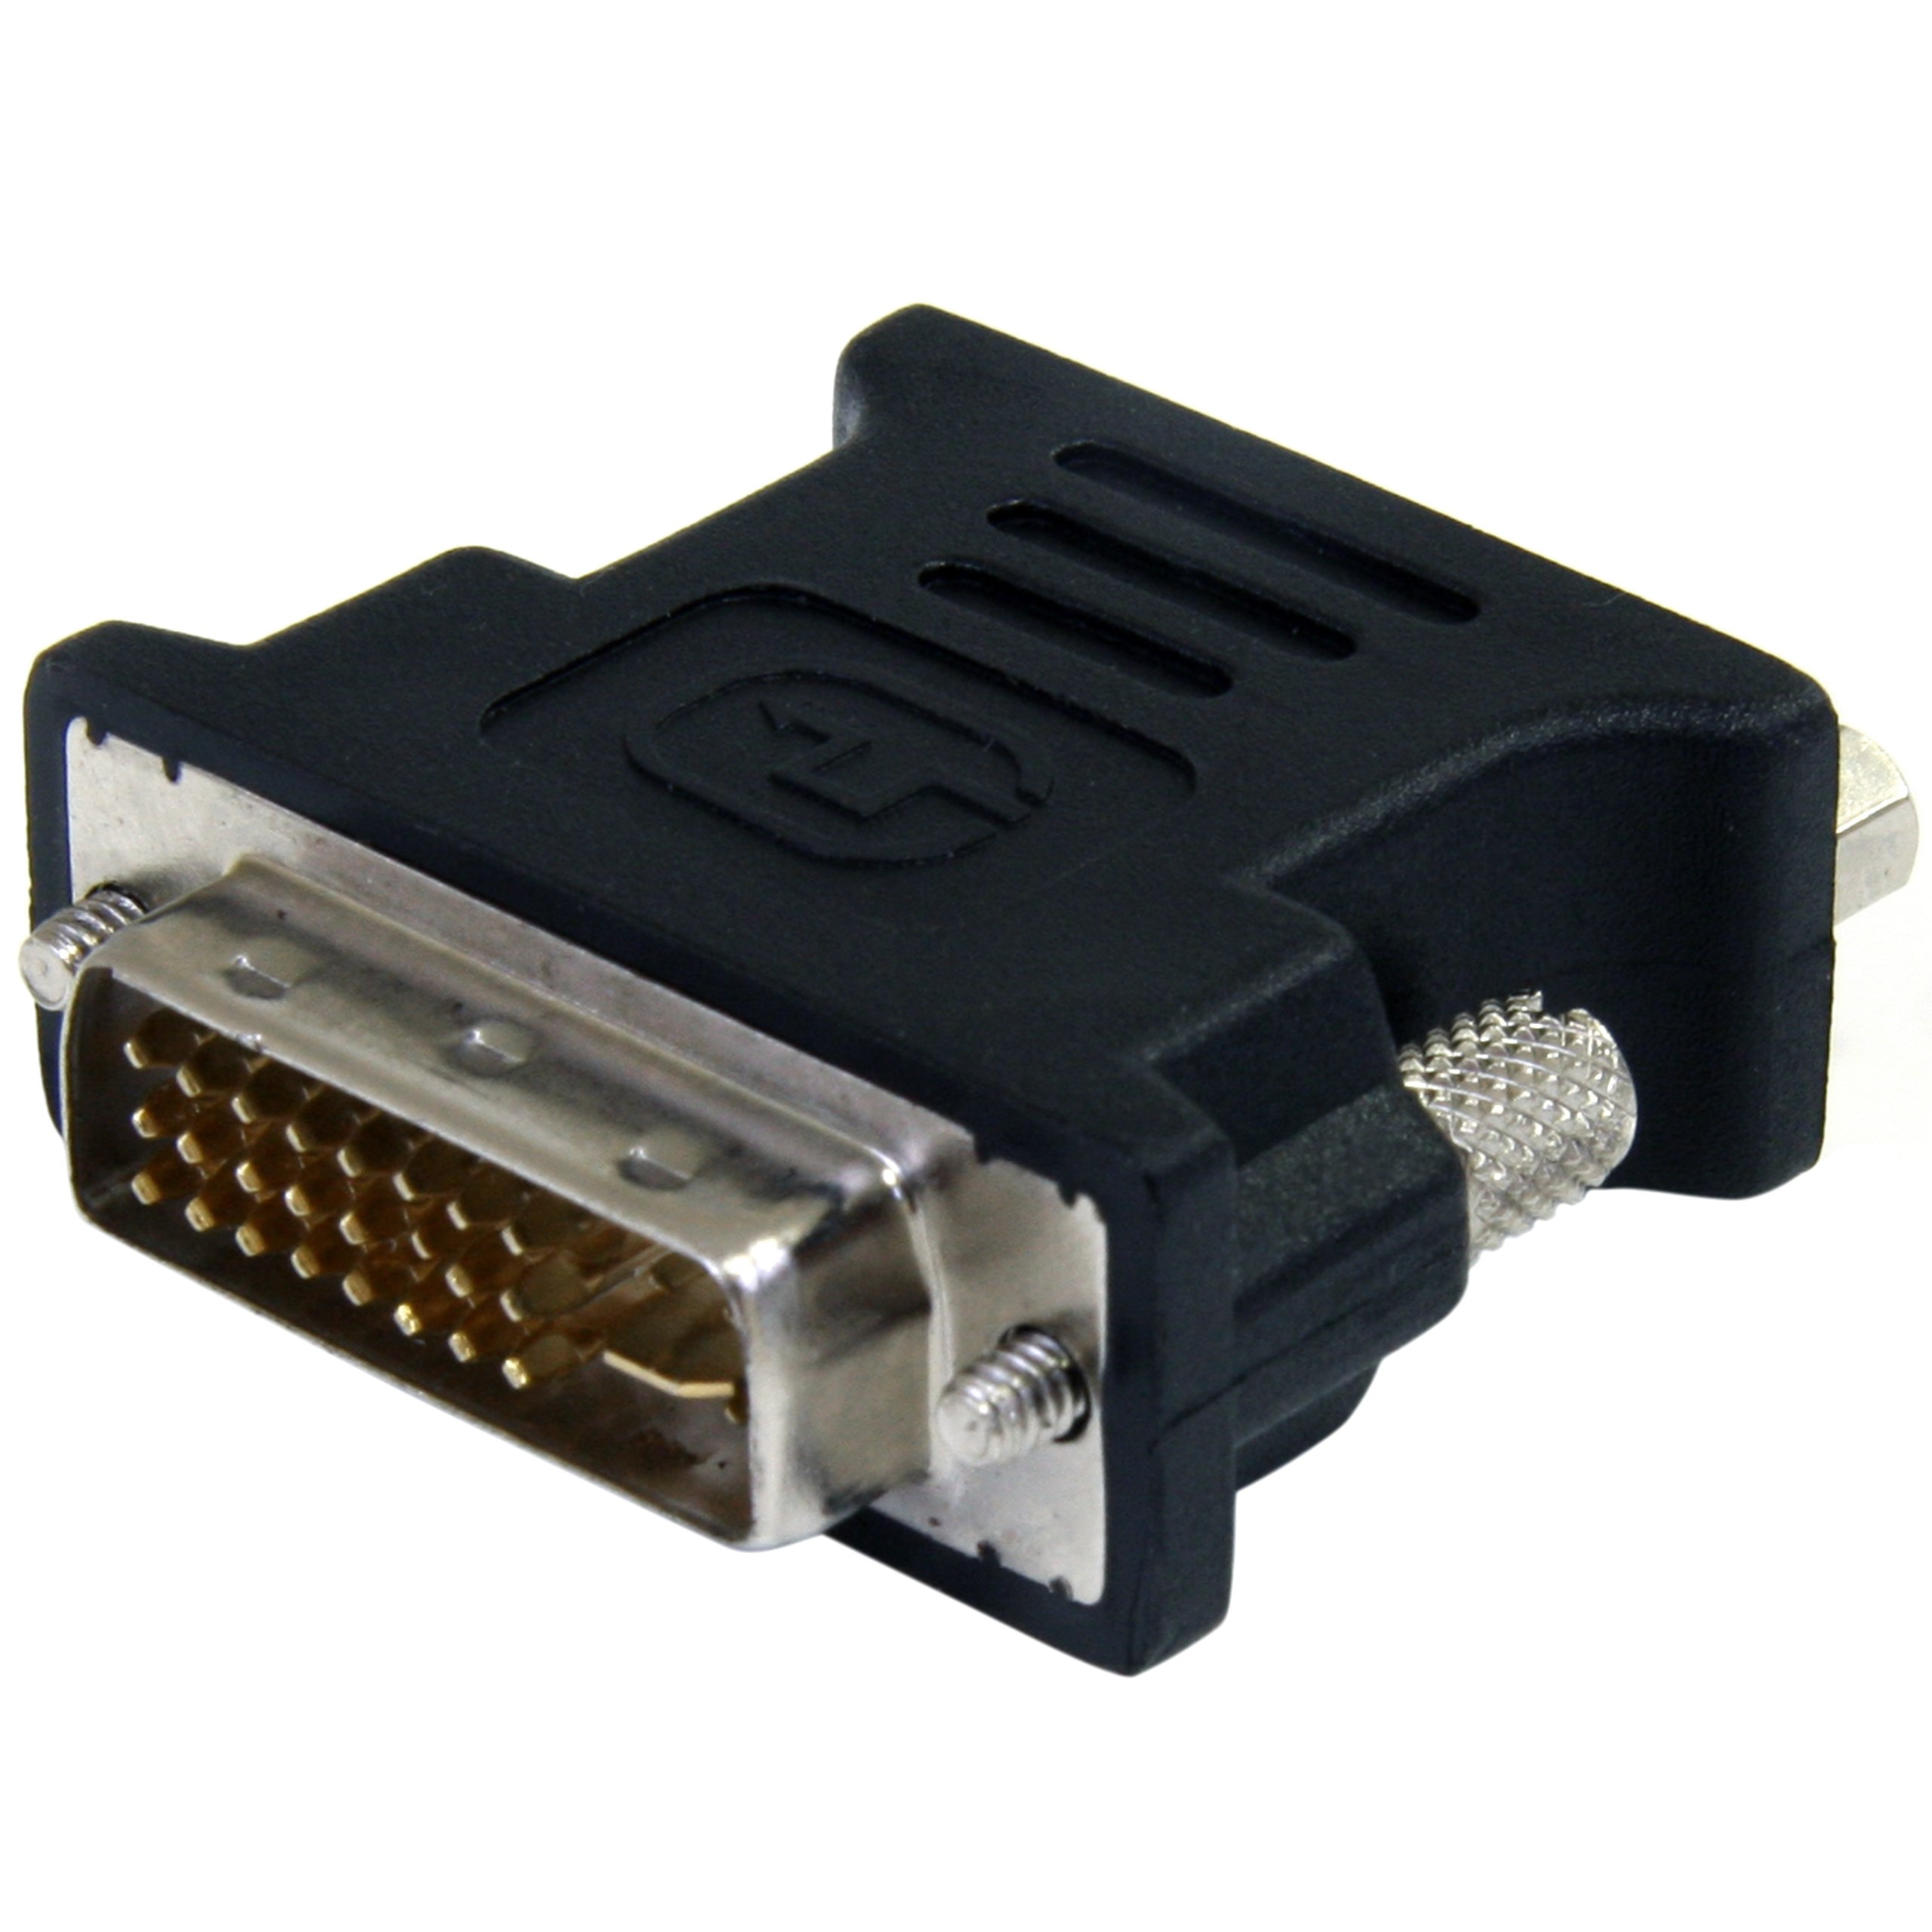 StarTech.com DVI to VGA Cable Adapter - DVI (M) to VGA (F) - 10 Pack - Black - DVI Male to VGA Female (DVIVGAMFB10P) by StarTech